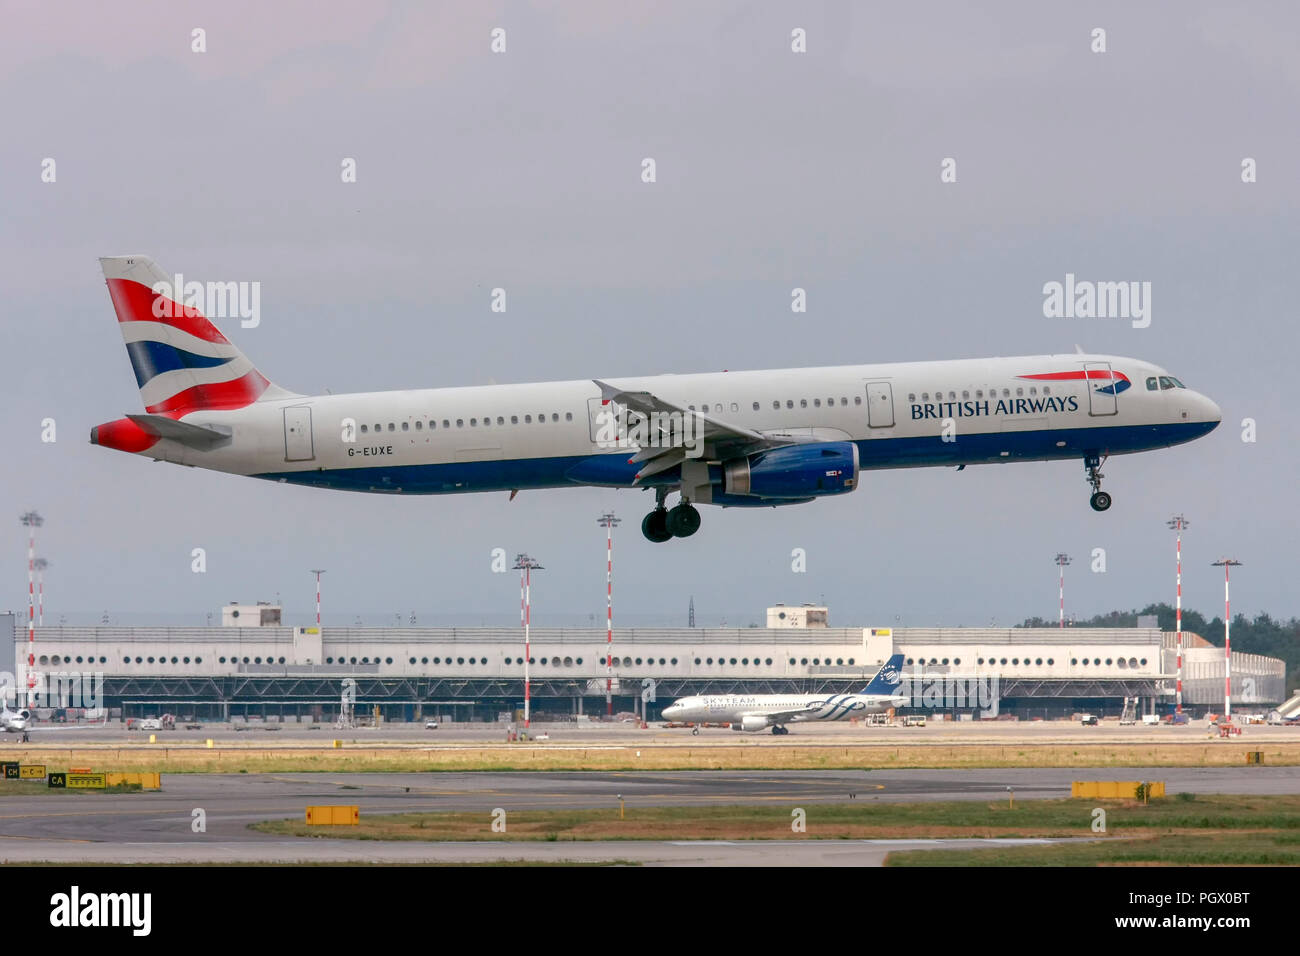 G-EUXE British Airways Airbus A321, Photographed at Malpensa (MXP / LIMC), Milan, Italy - Stock Image